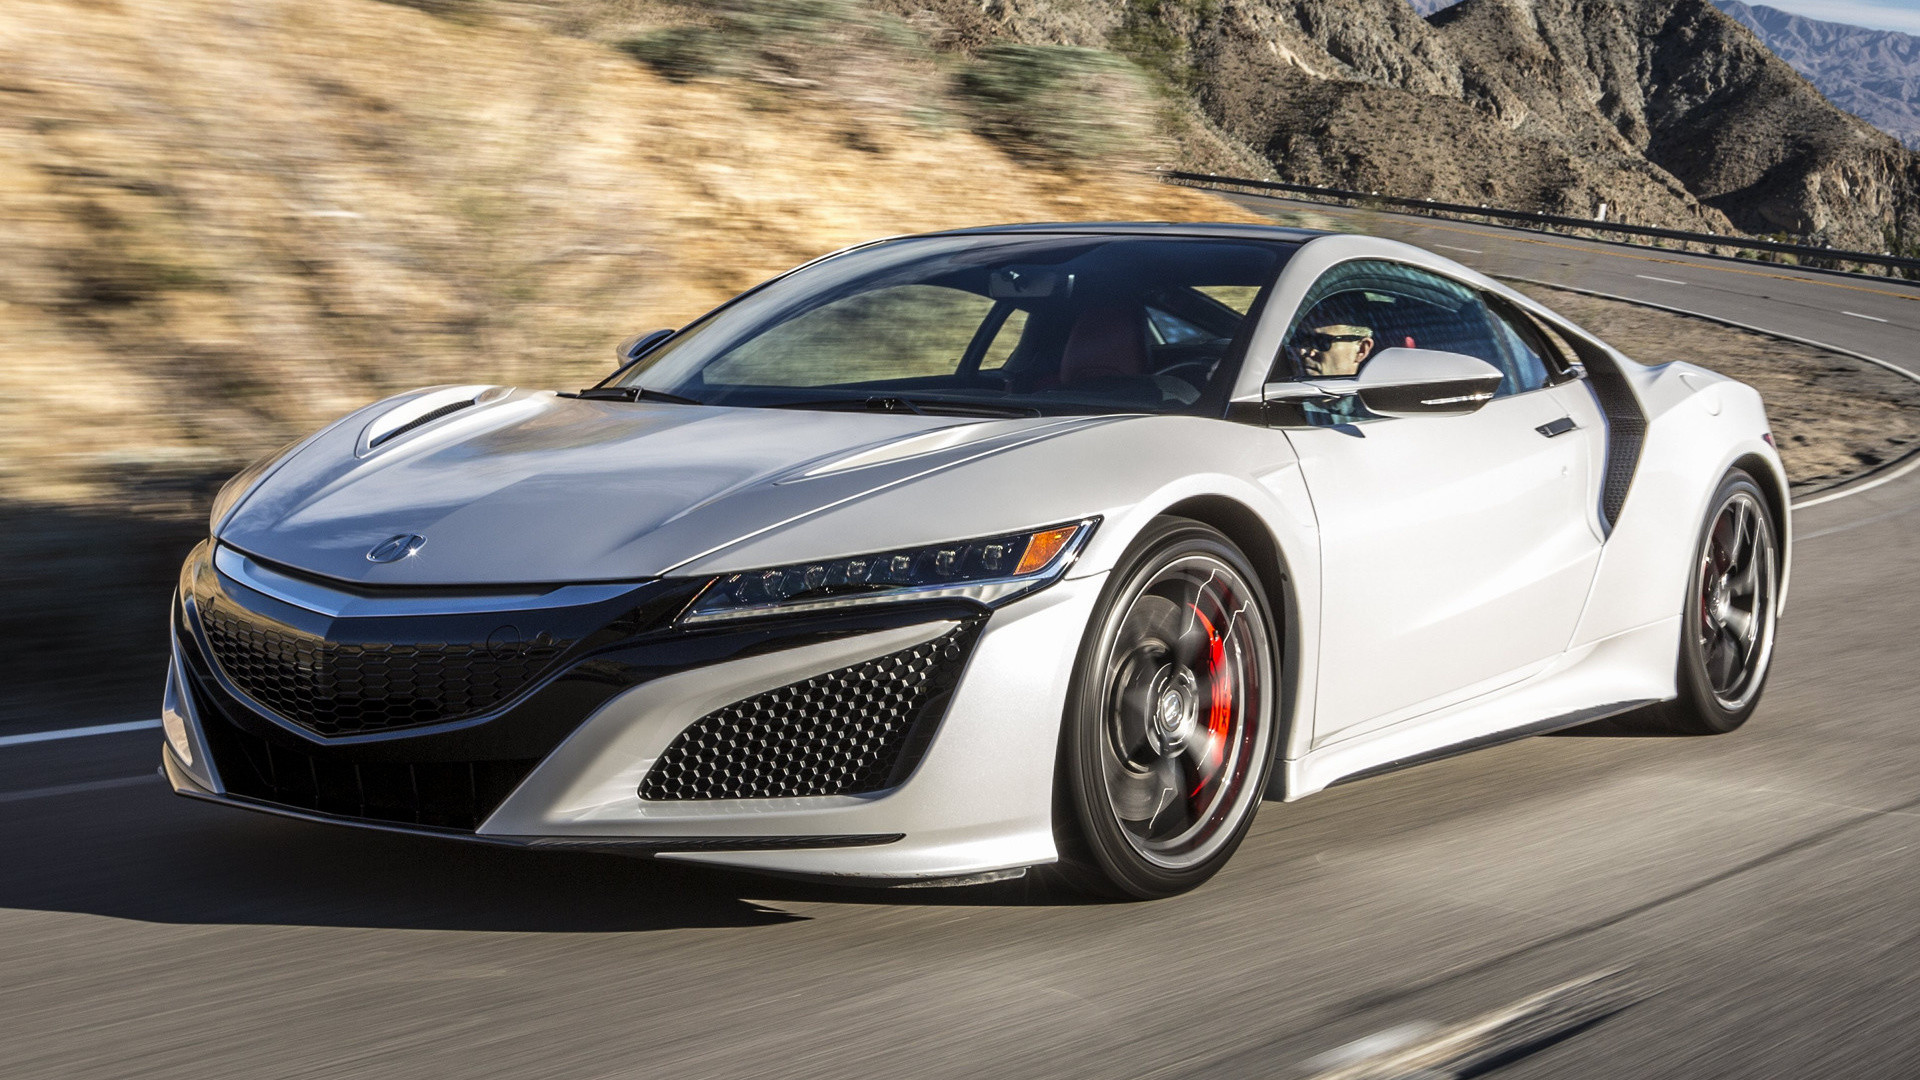 Best Bmw Car Wallpapers 2018 Acura Nsx Wallpapers 183 ①